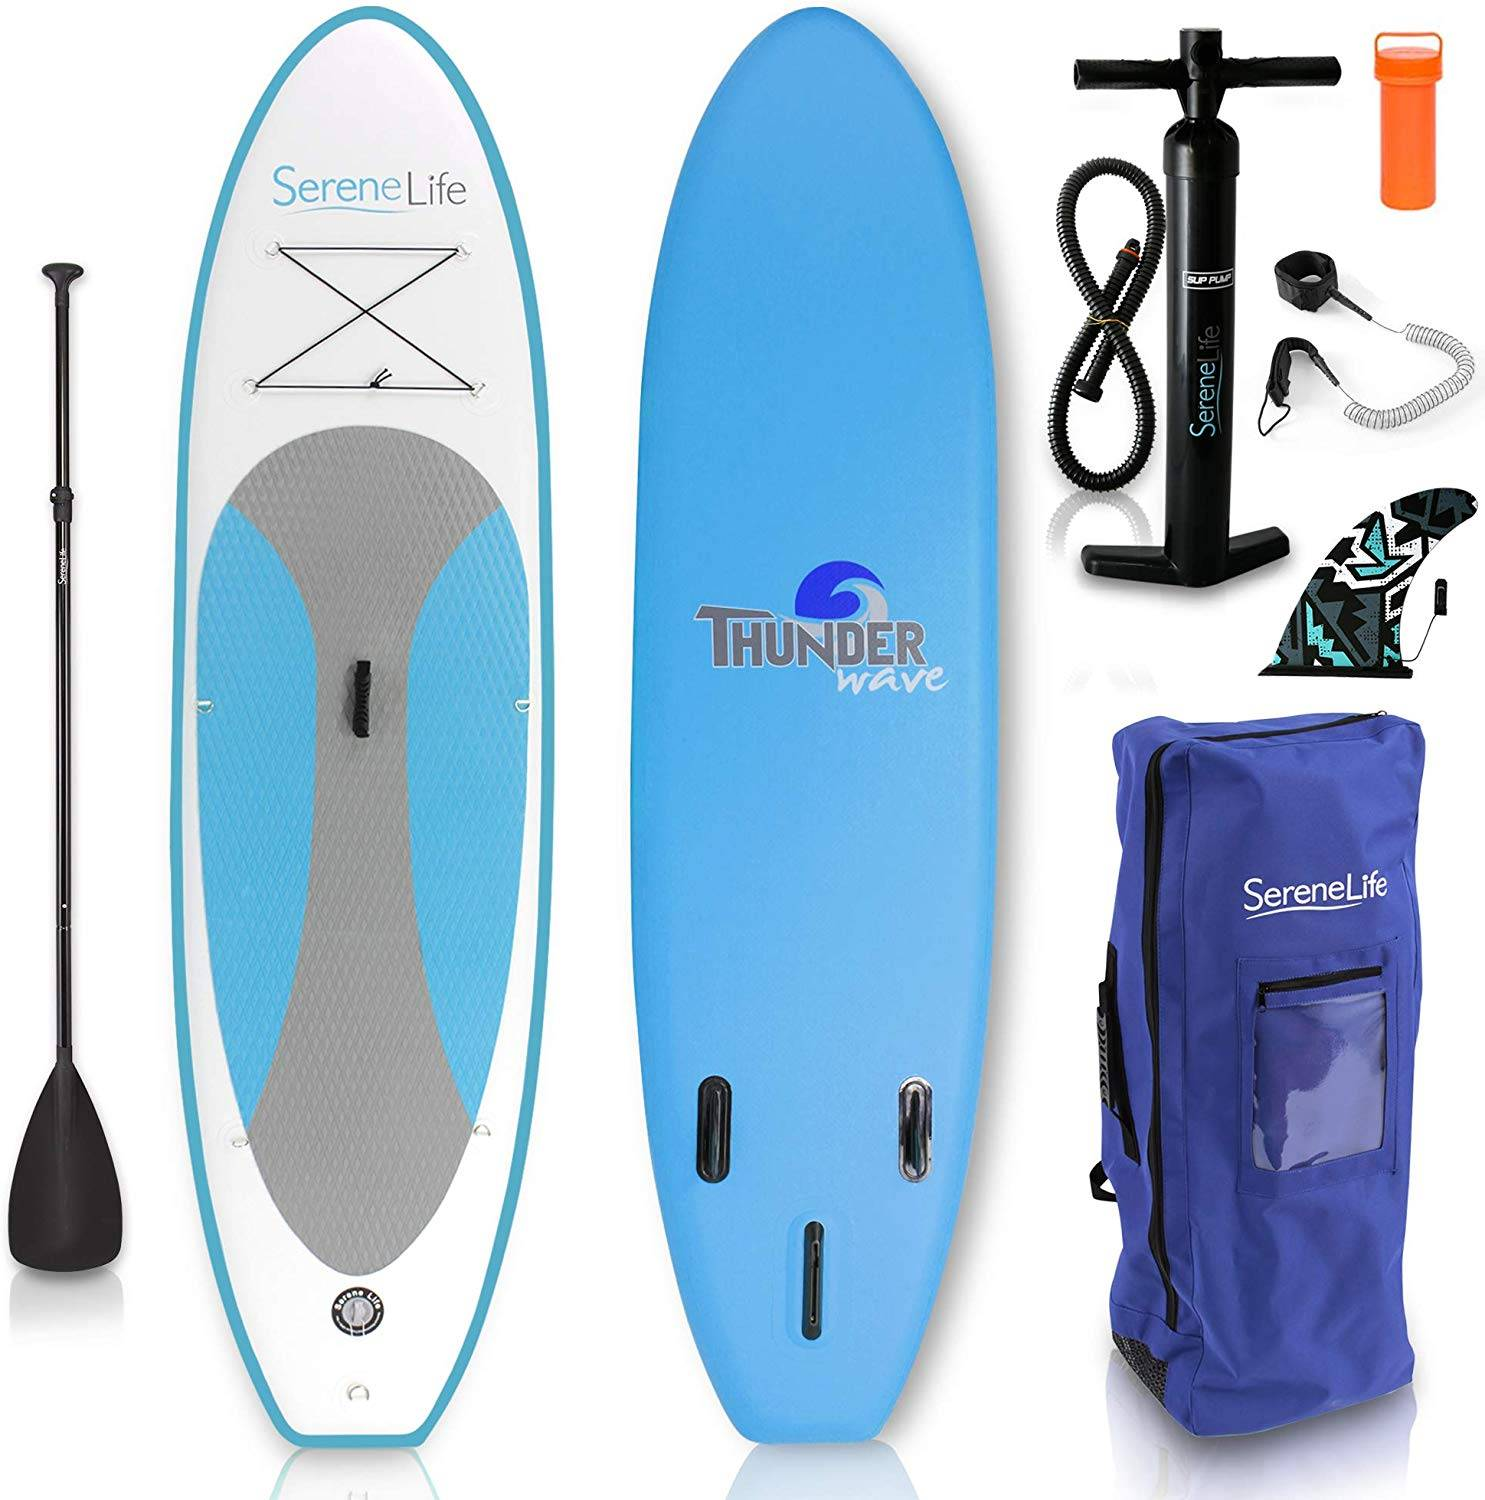 SereneLife Paddle Board review